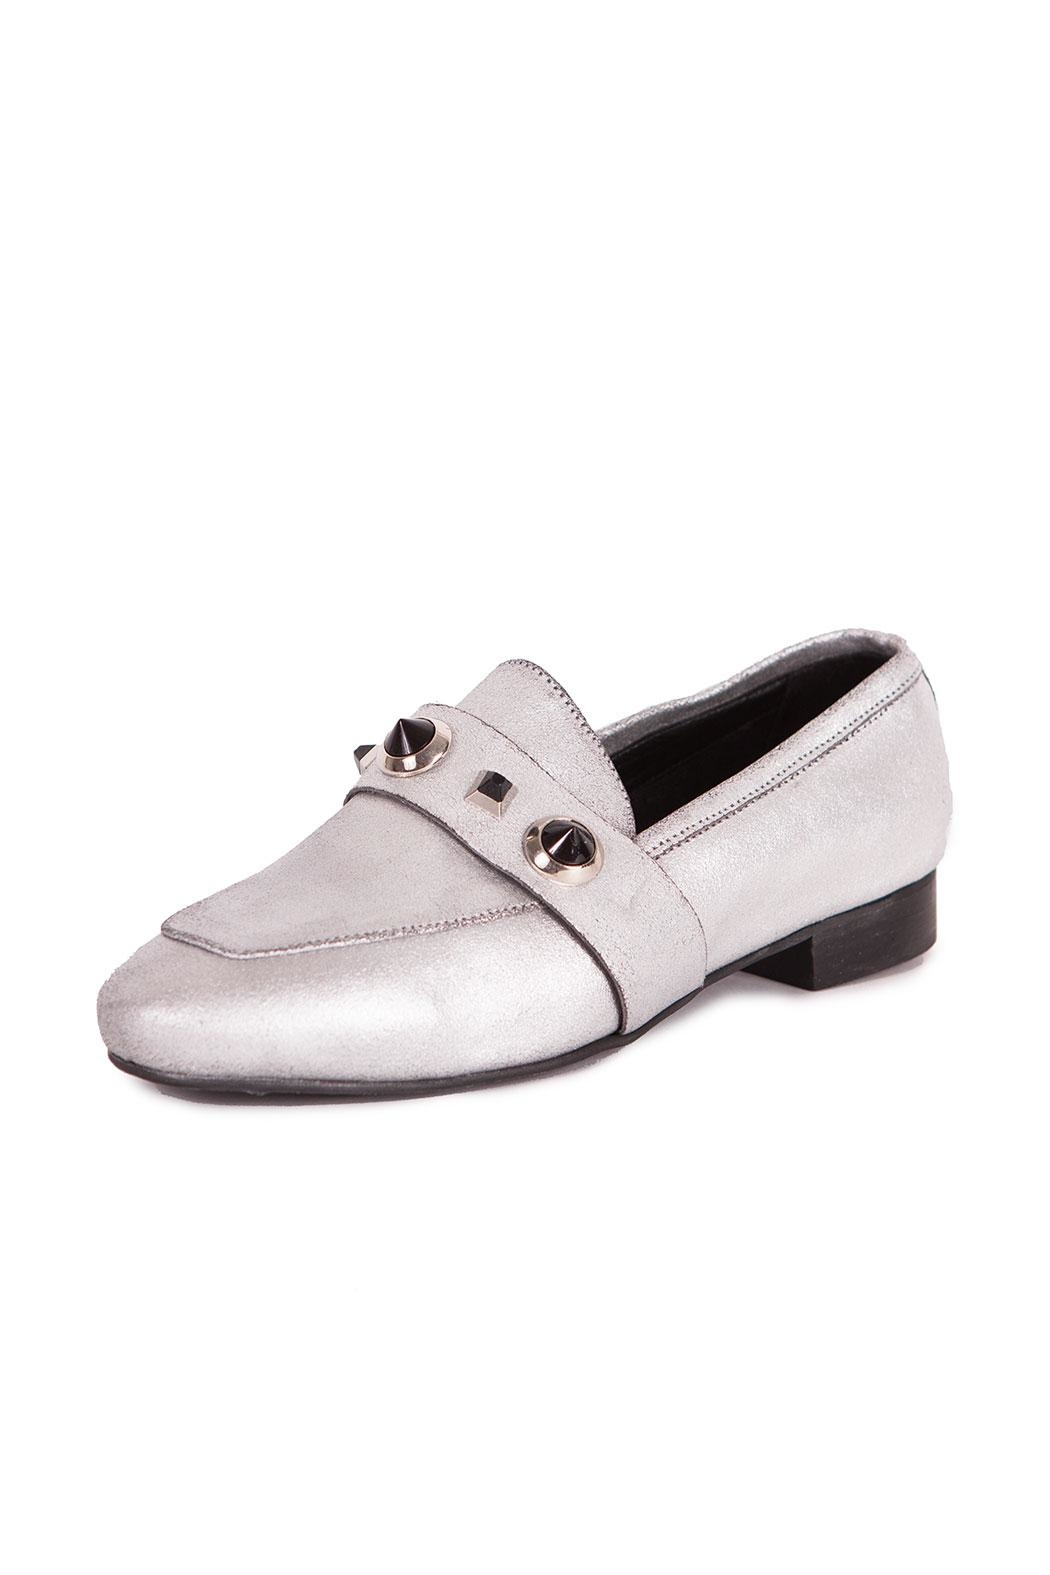 Pixy Milano Metallic Leather Oxfords - Main Image